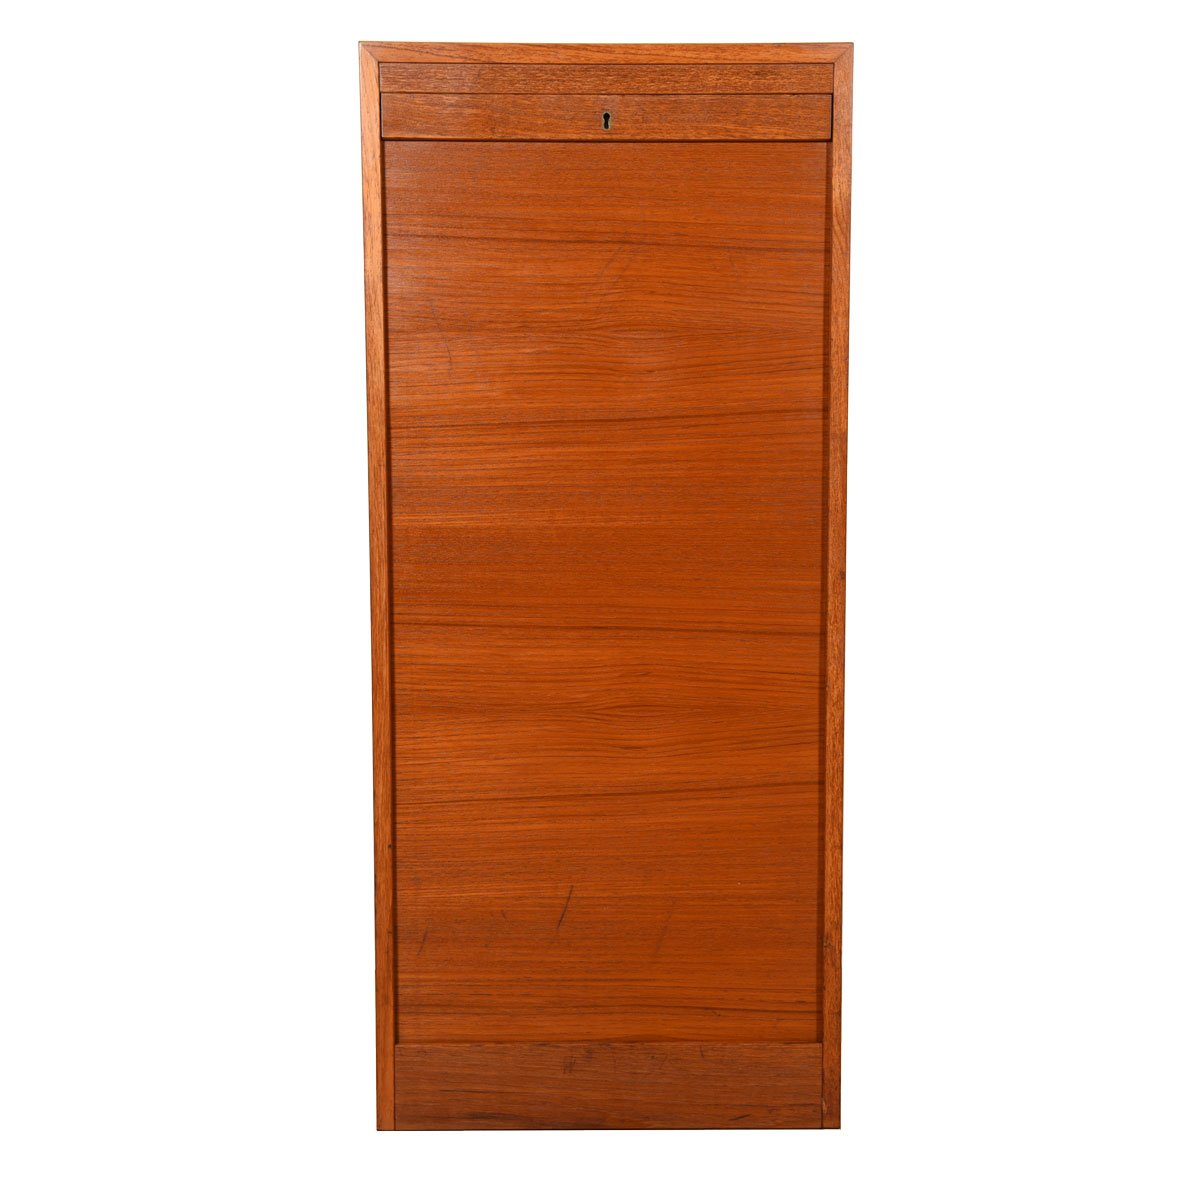 Danish Modern Teak Locking Tambour Door Filing Cabinet